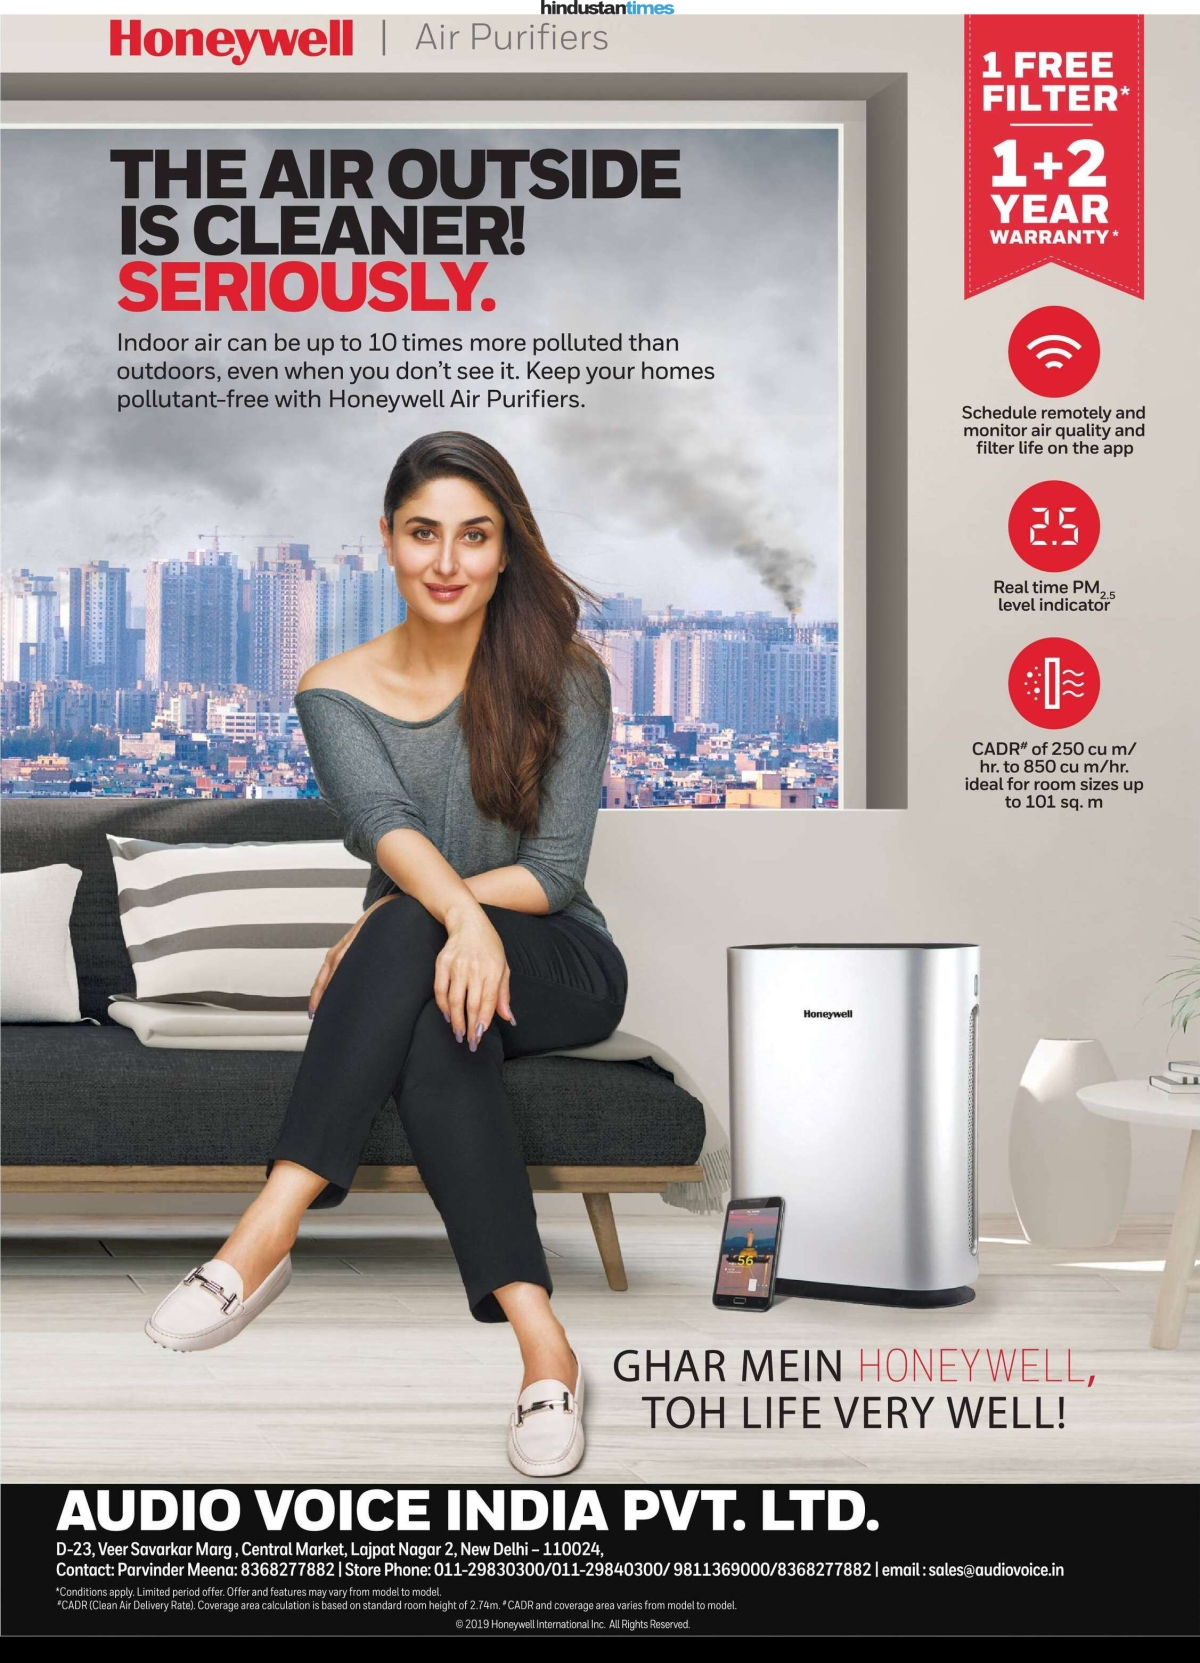 Honeywell air purifier's full page ad in HT City, South Delhi edition